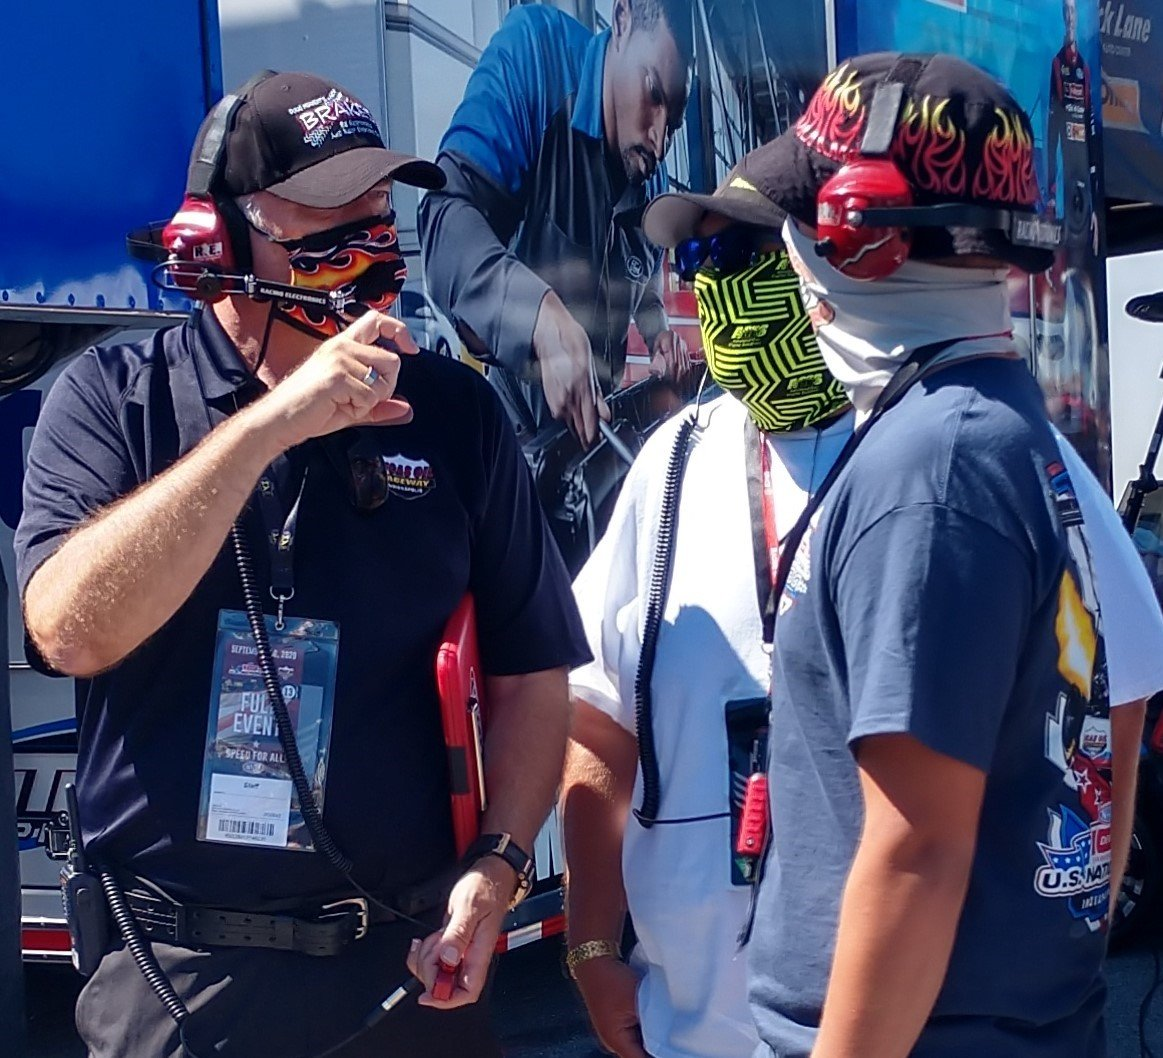 """Thanks @PutOnTheBRAKES - for featuring us !  Yes find us walking """"backwards"""" with our V.I.P. Guests @NHRA + @IndyCar Events Follow Us to stay in the know on upcoming #RacesherpaAdventures #VIPTours #BucketList #USNats #NHRA #IndyCar #ClassicRacing  #HistoricRacing 